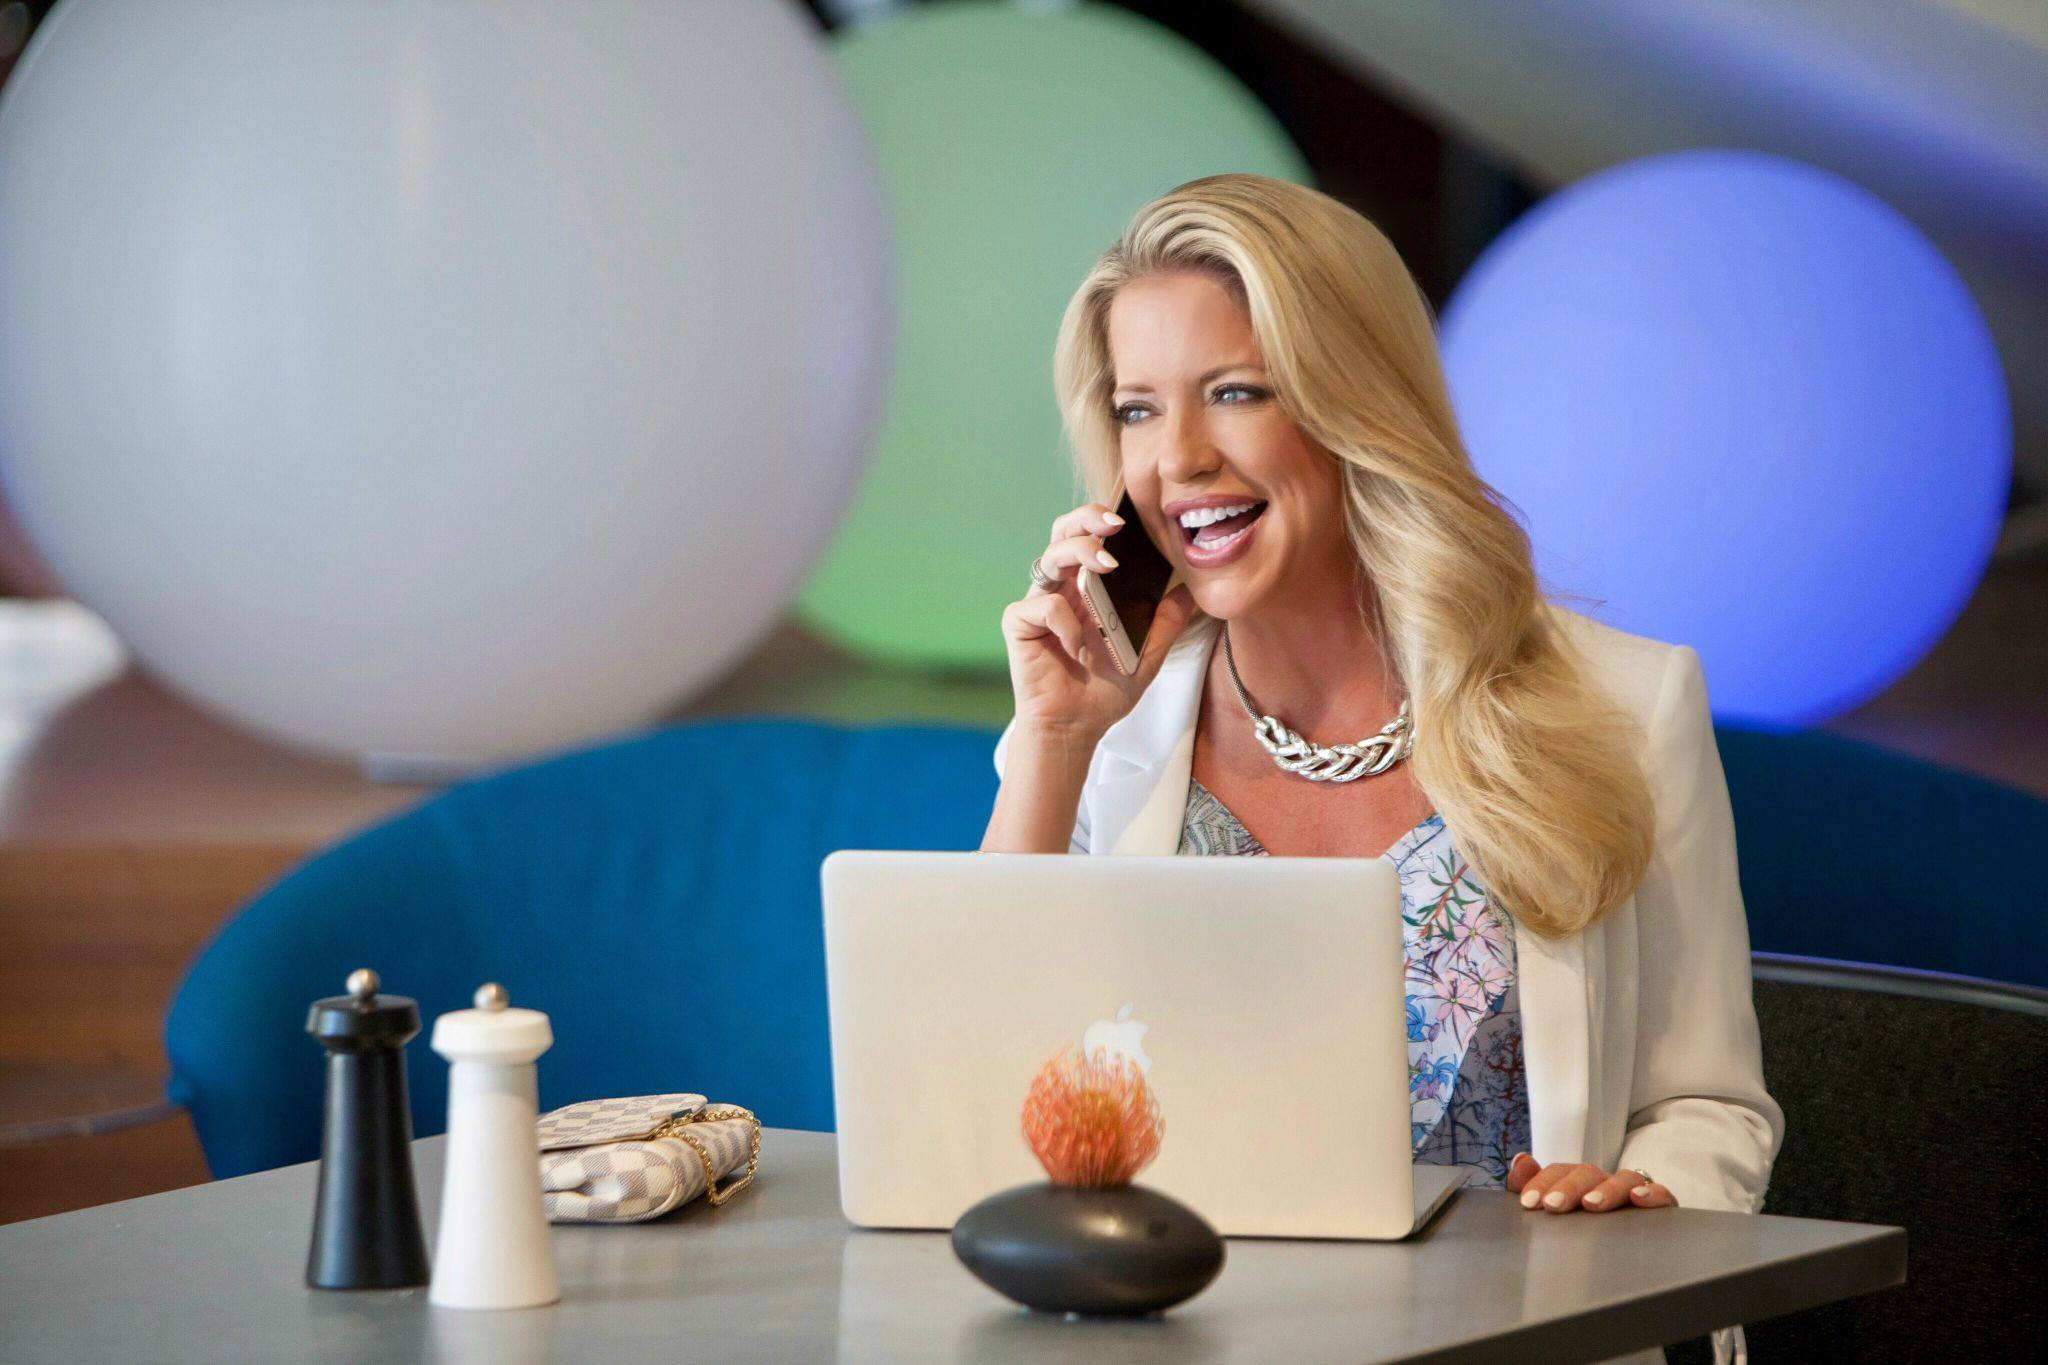 Lifestyle Headshots For Business Professionals